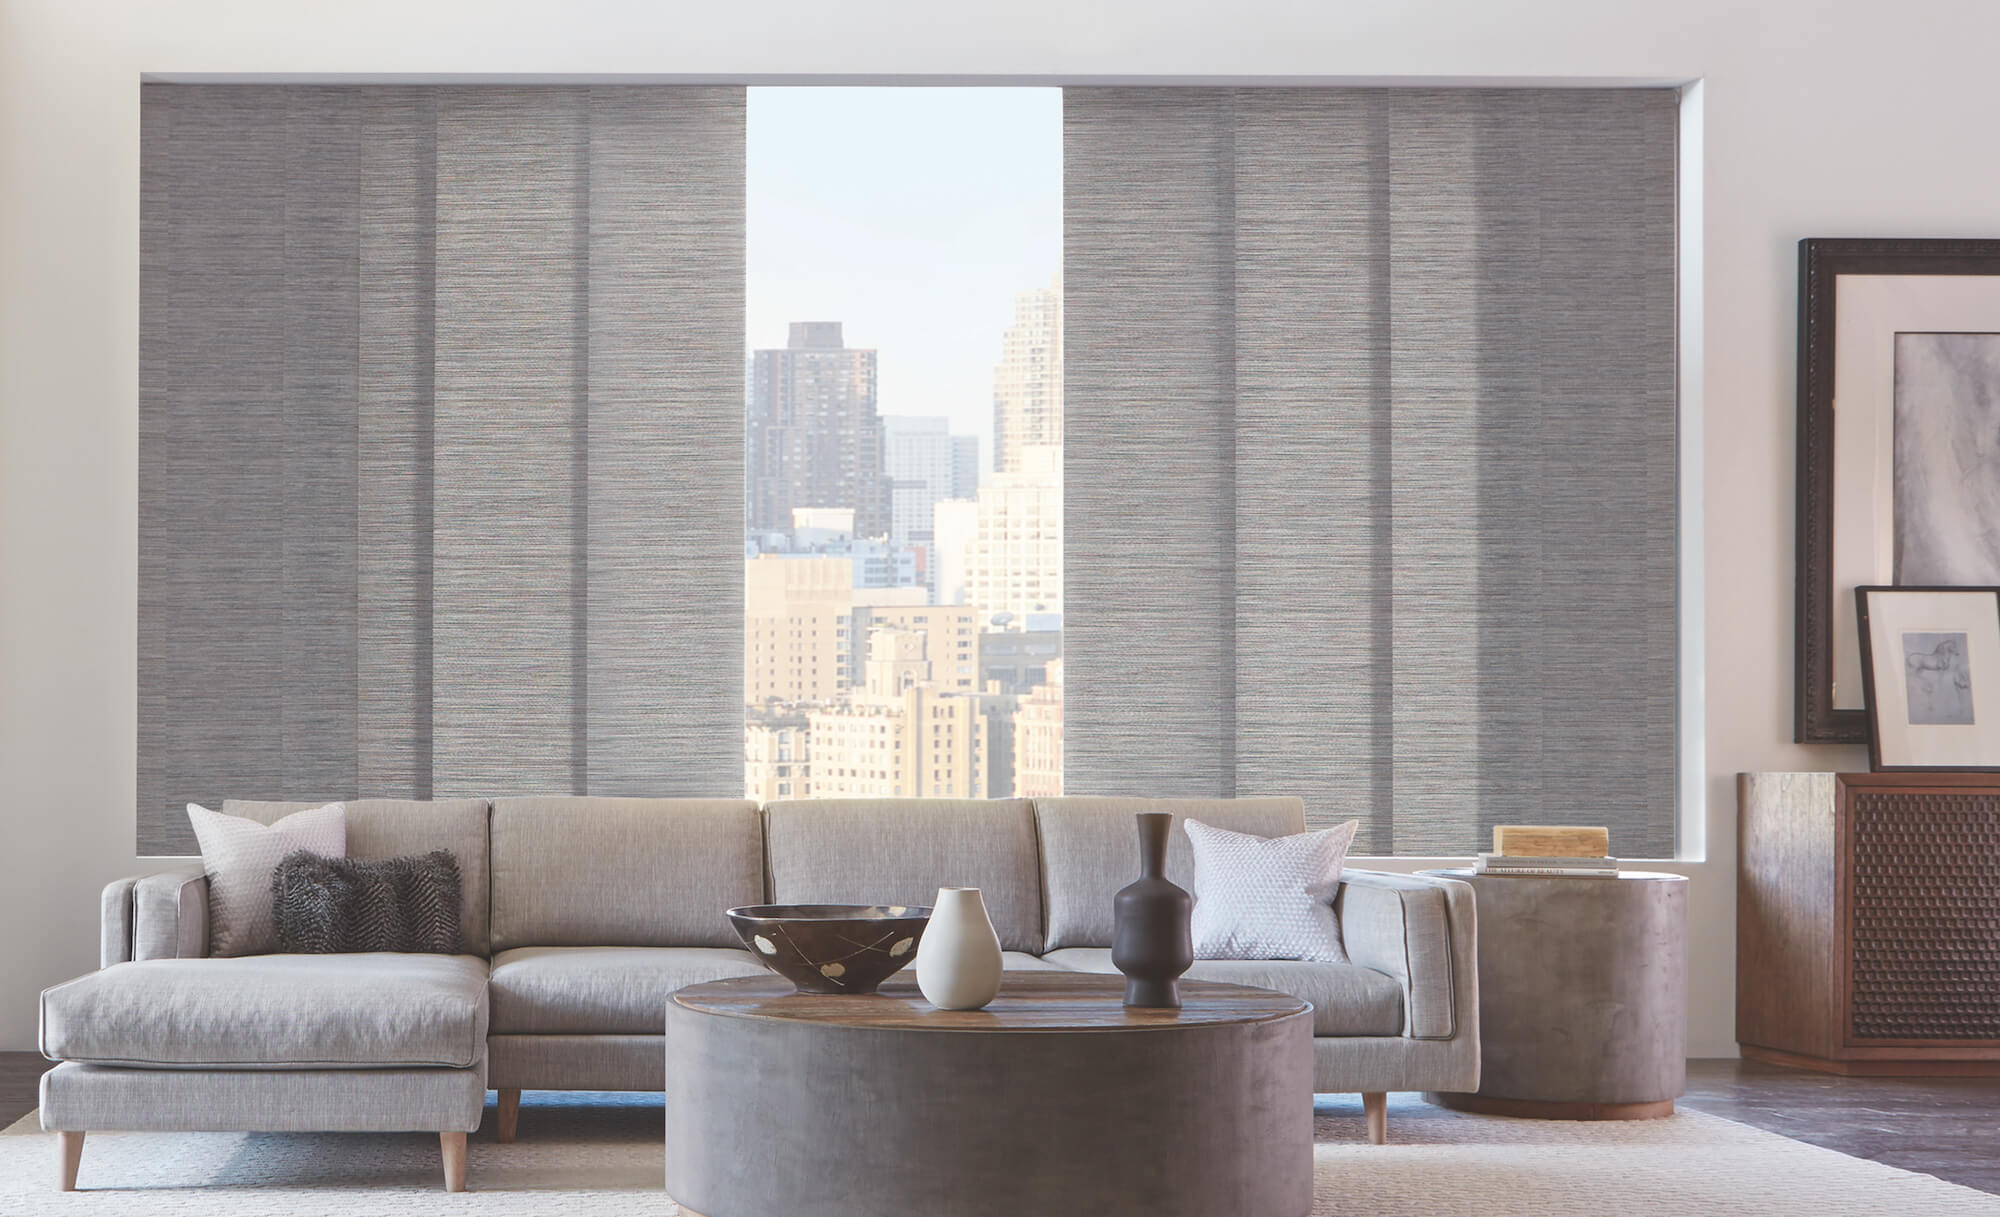 Living Room Skyline Gliding Window Panels opening to city view